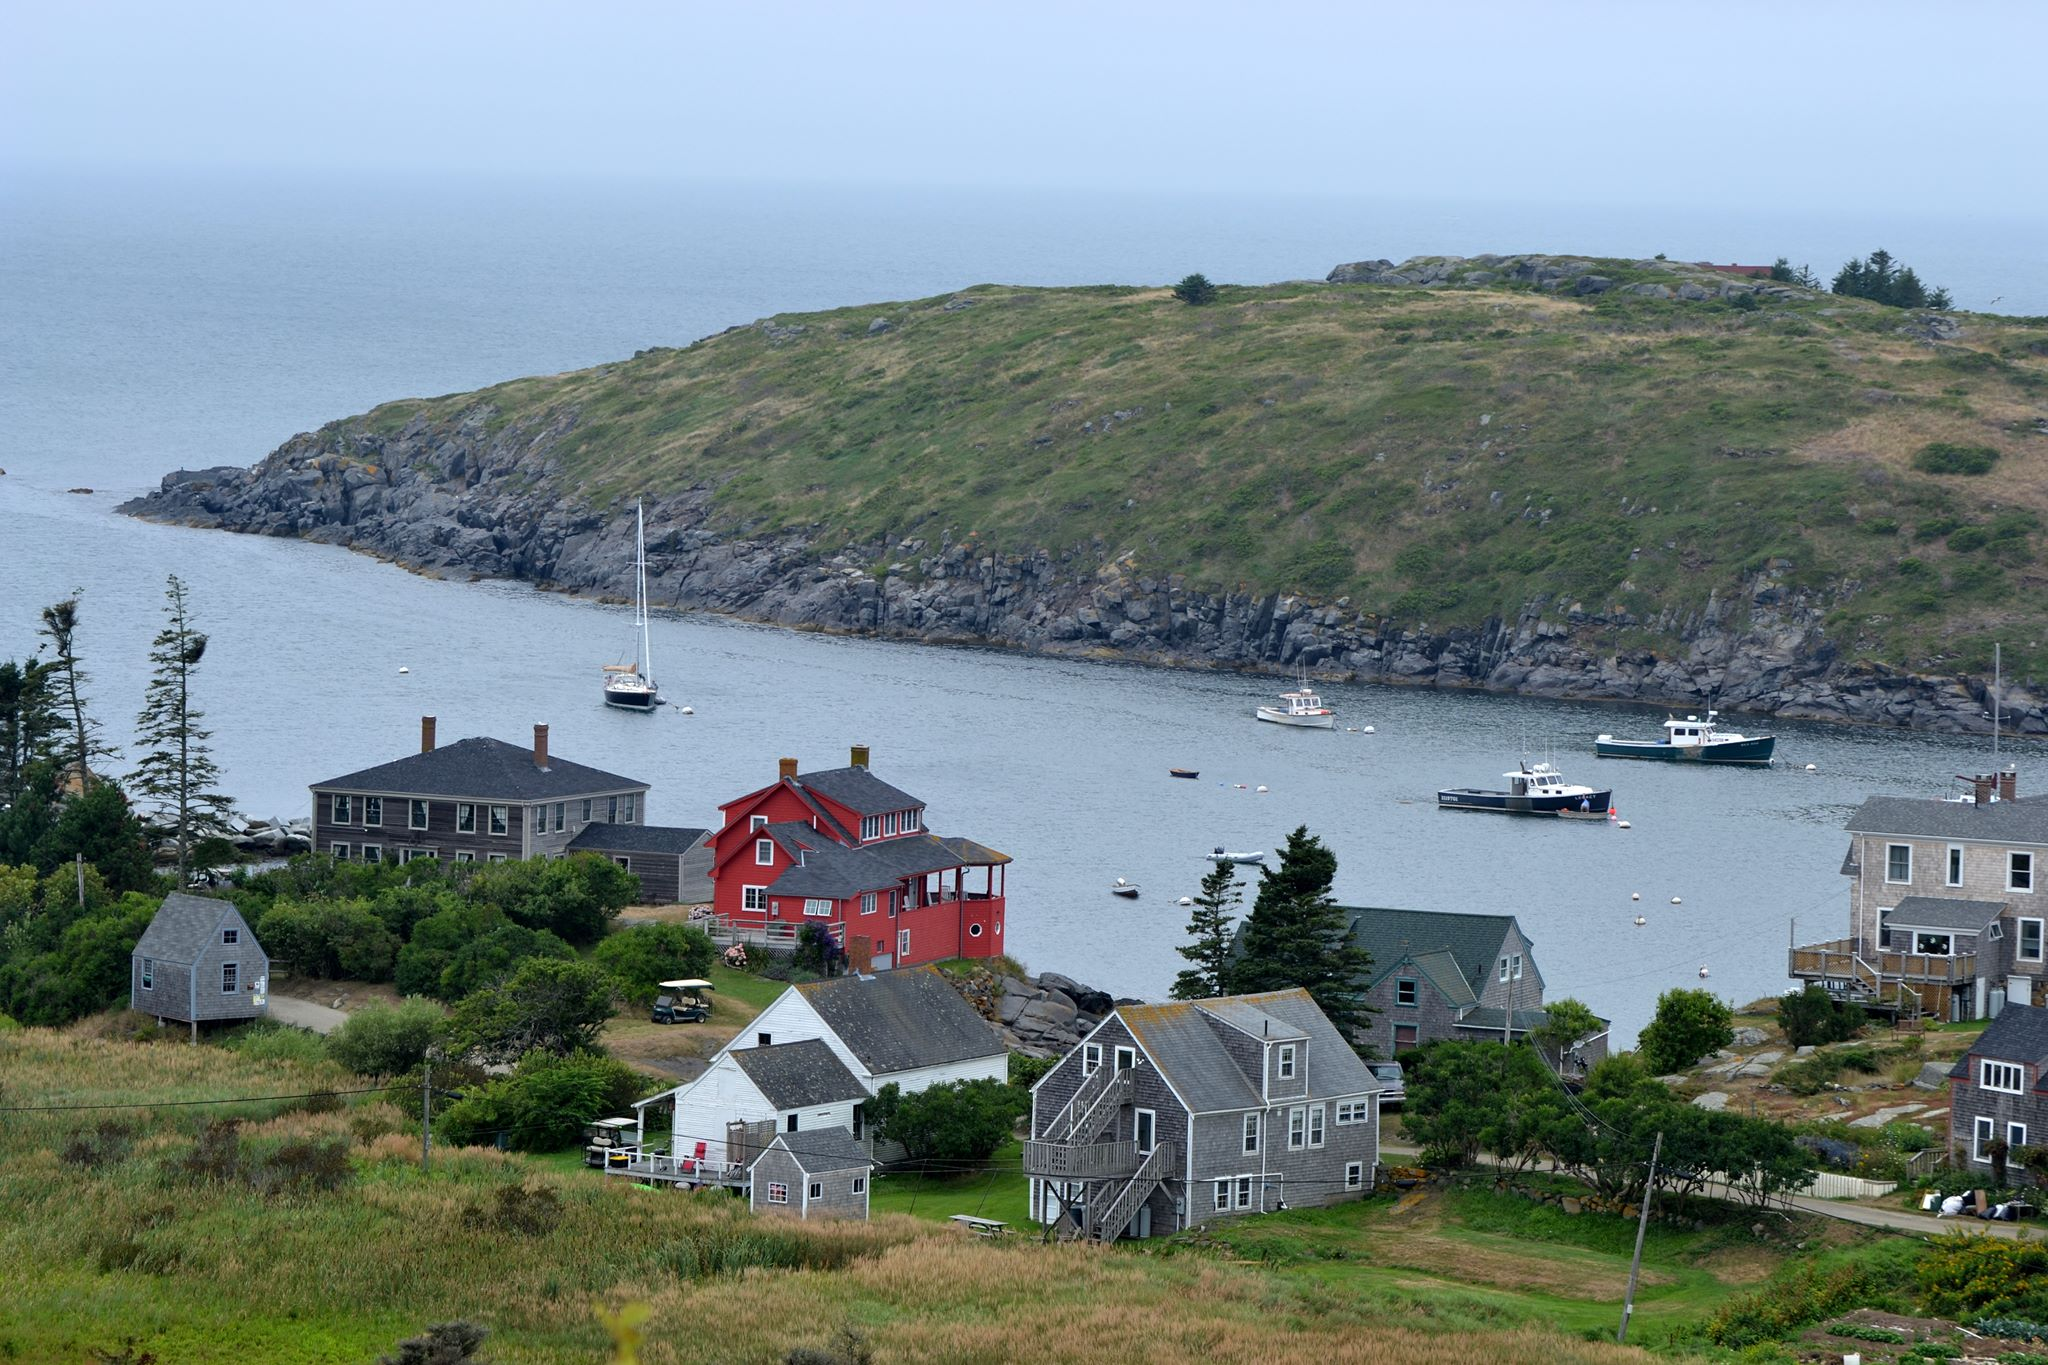 Monhegan Harbor